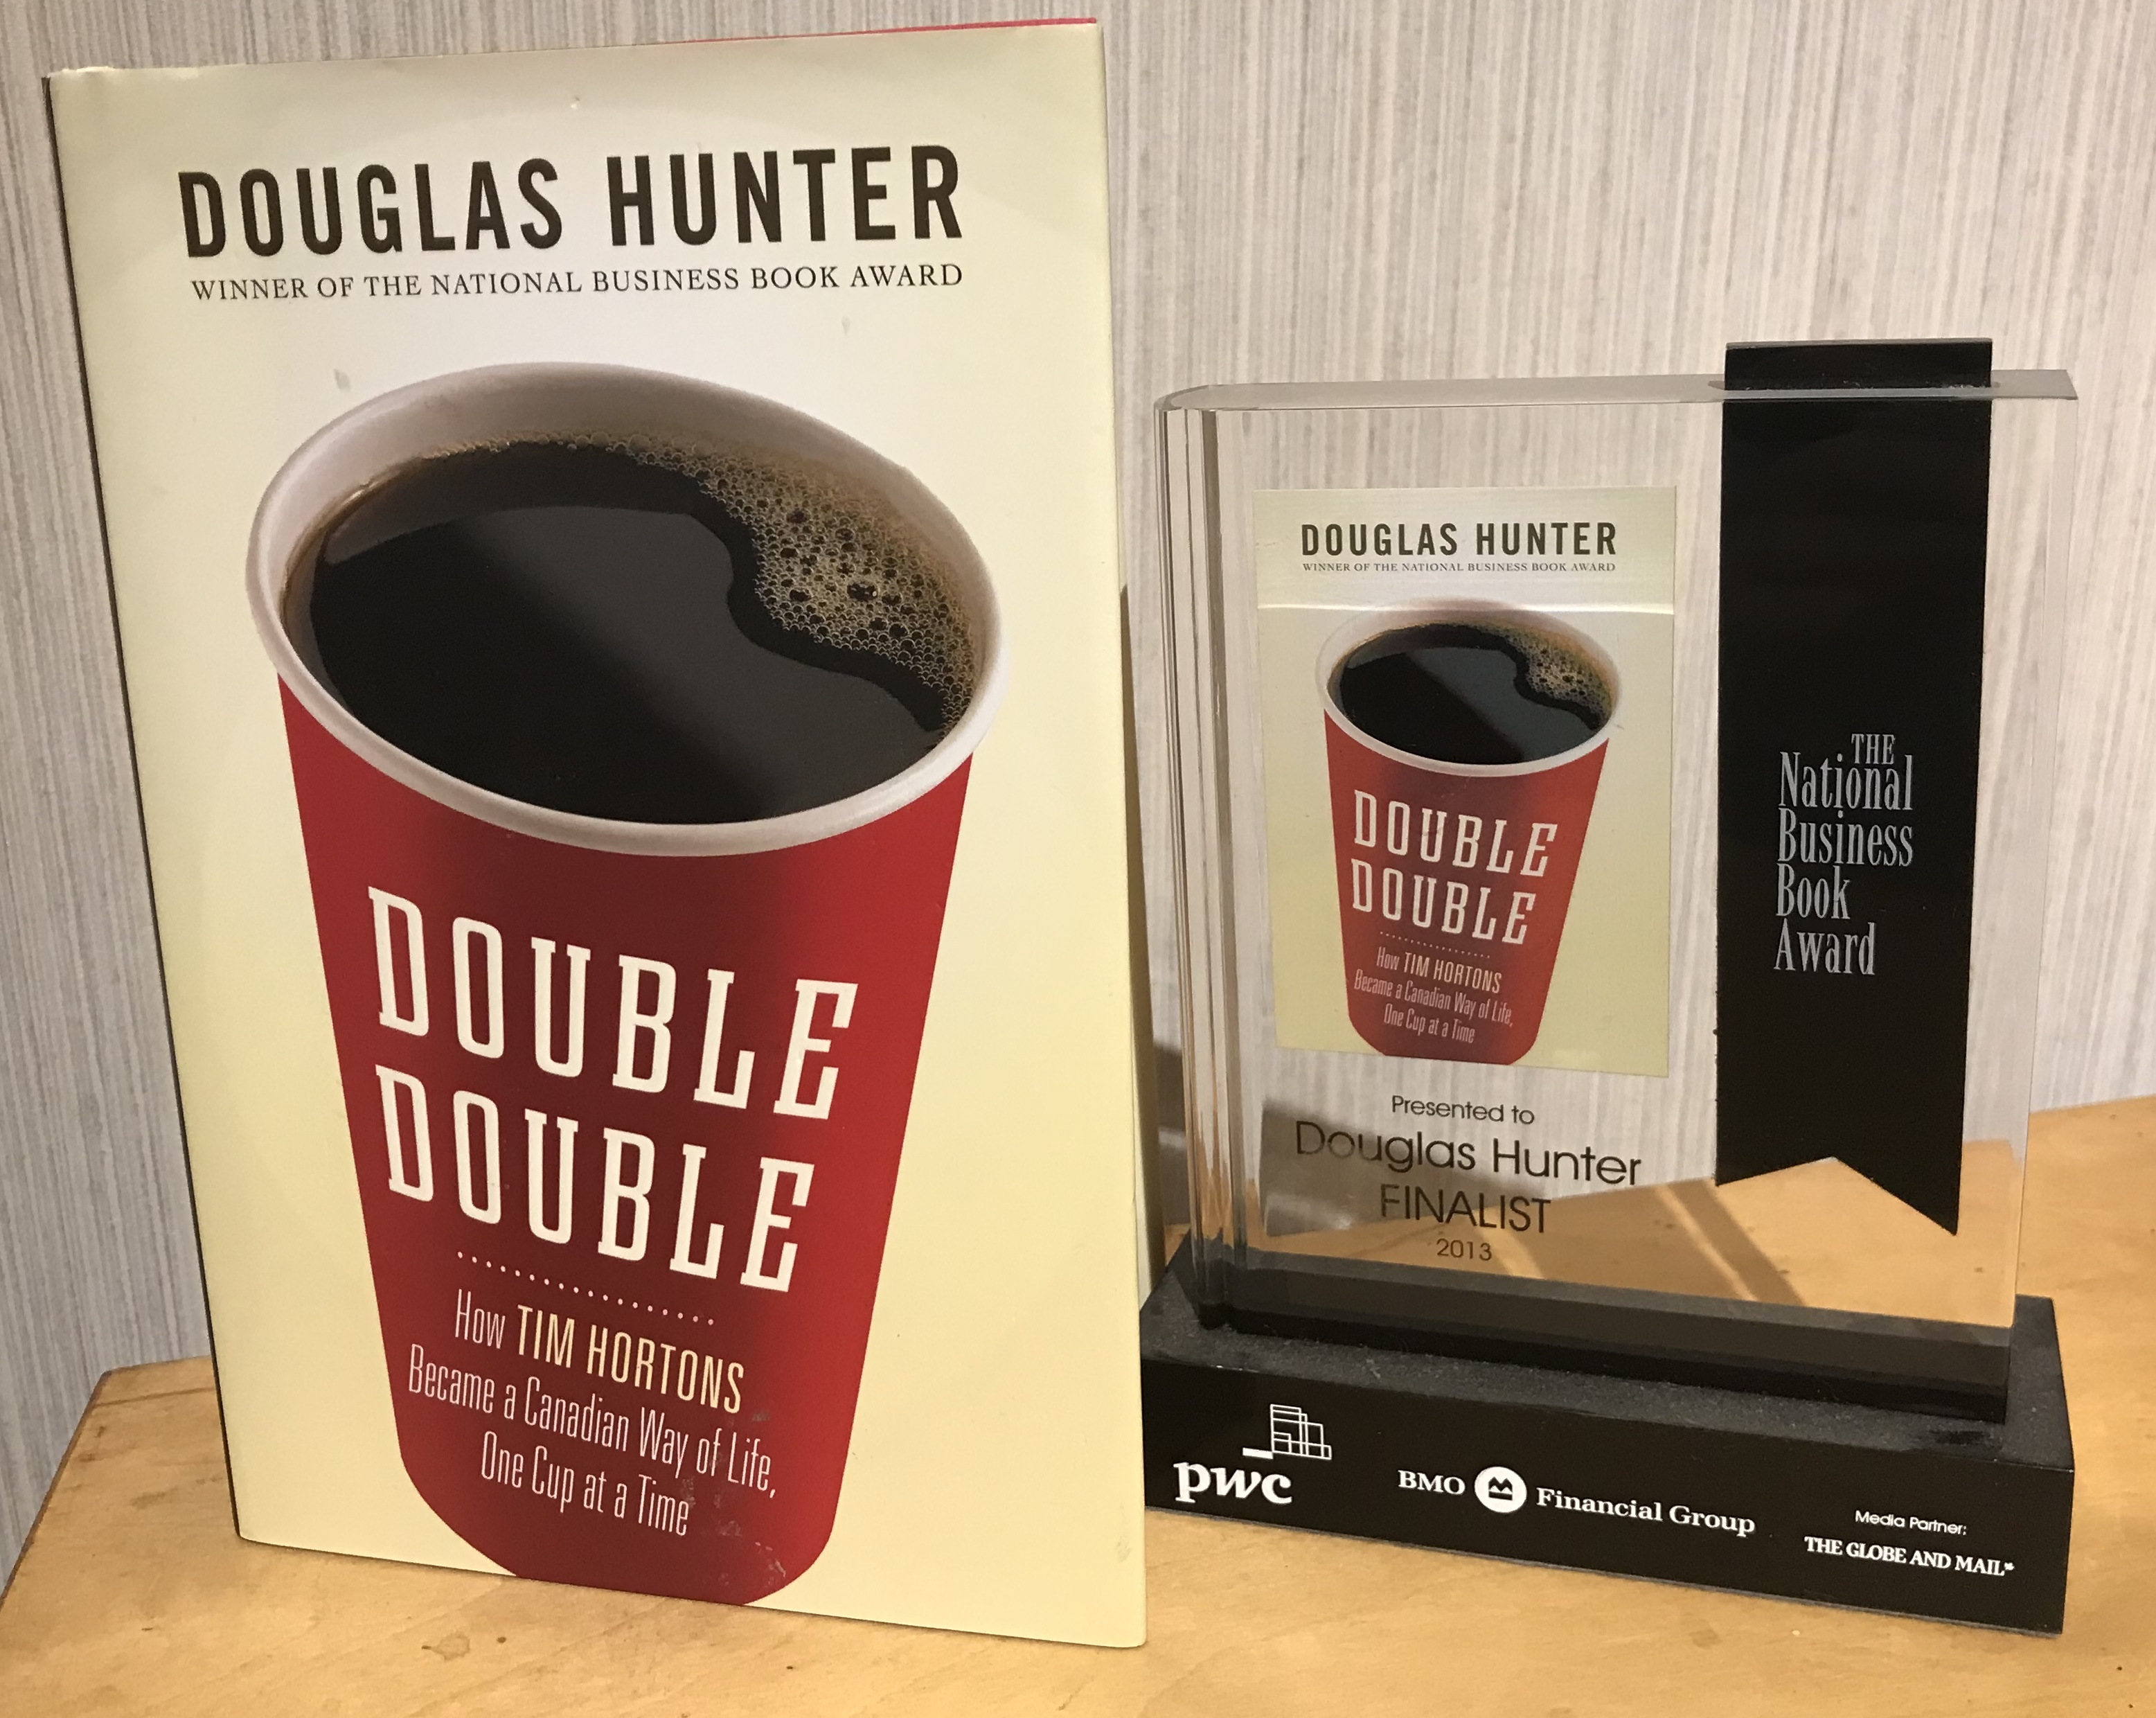 Double Double – Douglas Hunter